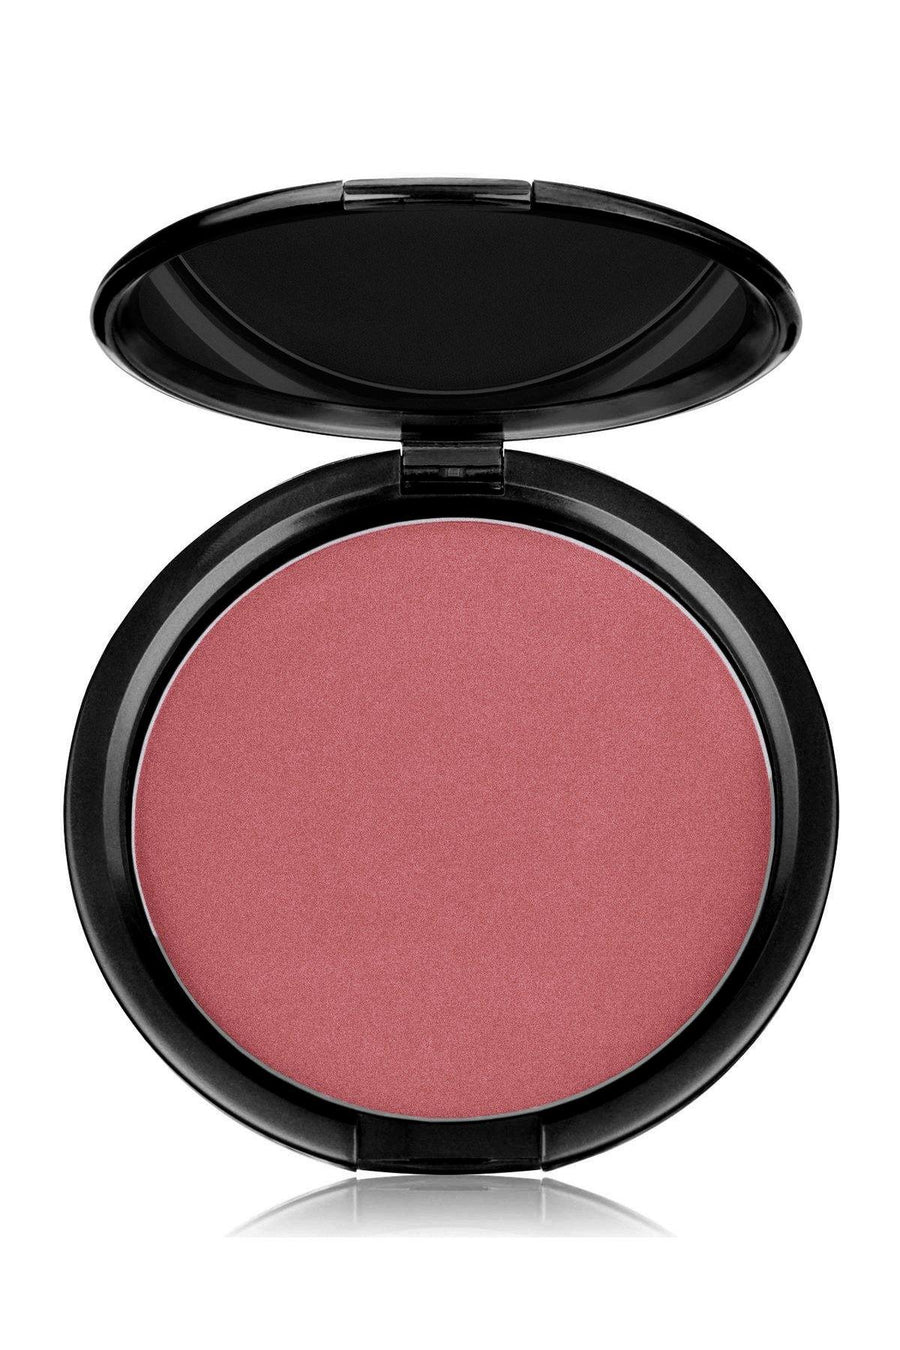 Blush Mineral Pressed Powder - Pink Tone - Blend Mineral Cosmetics